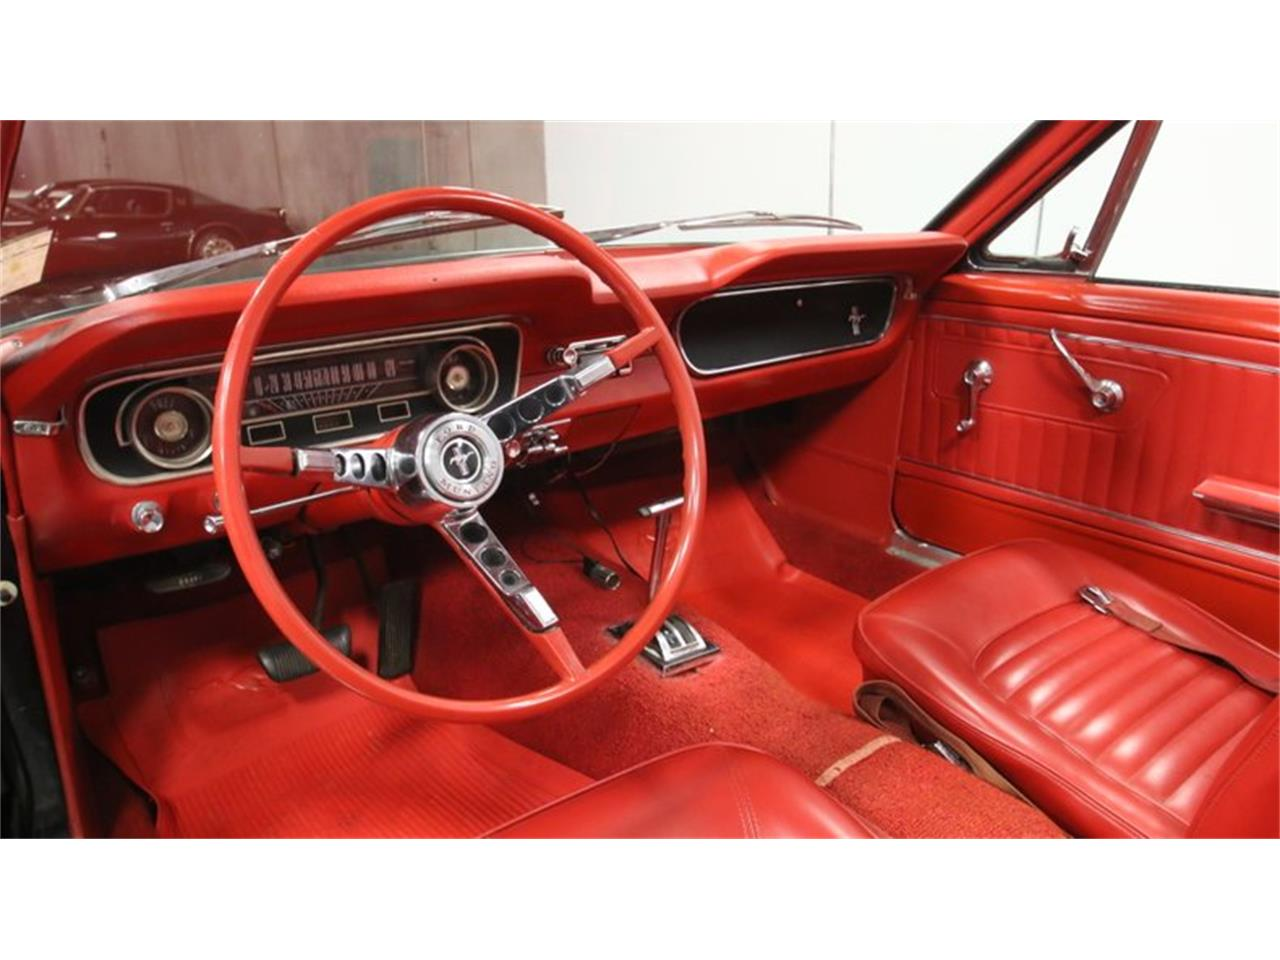 Large Picture of Classic '64 Mustang located in Georgia - $28,995.00 Offered by Streetside Classics - Atlanta - QA2K